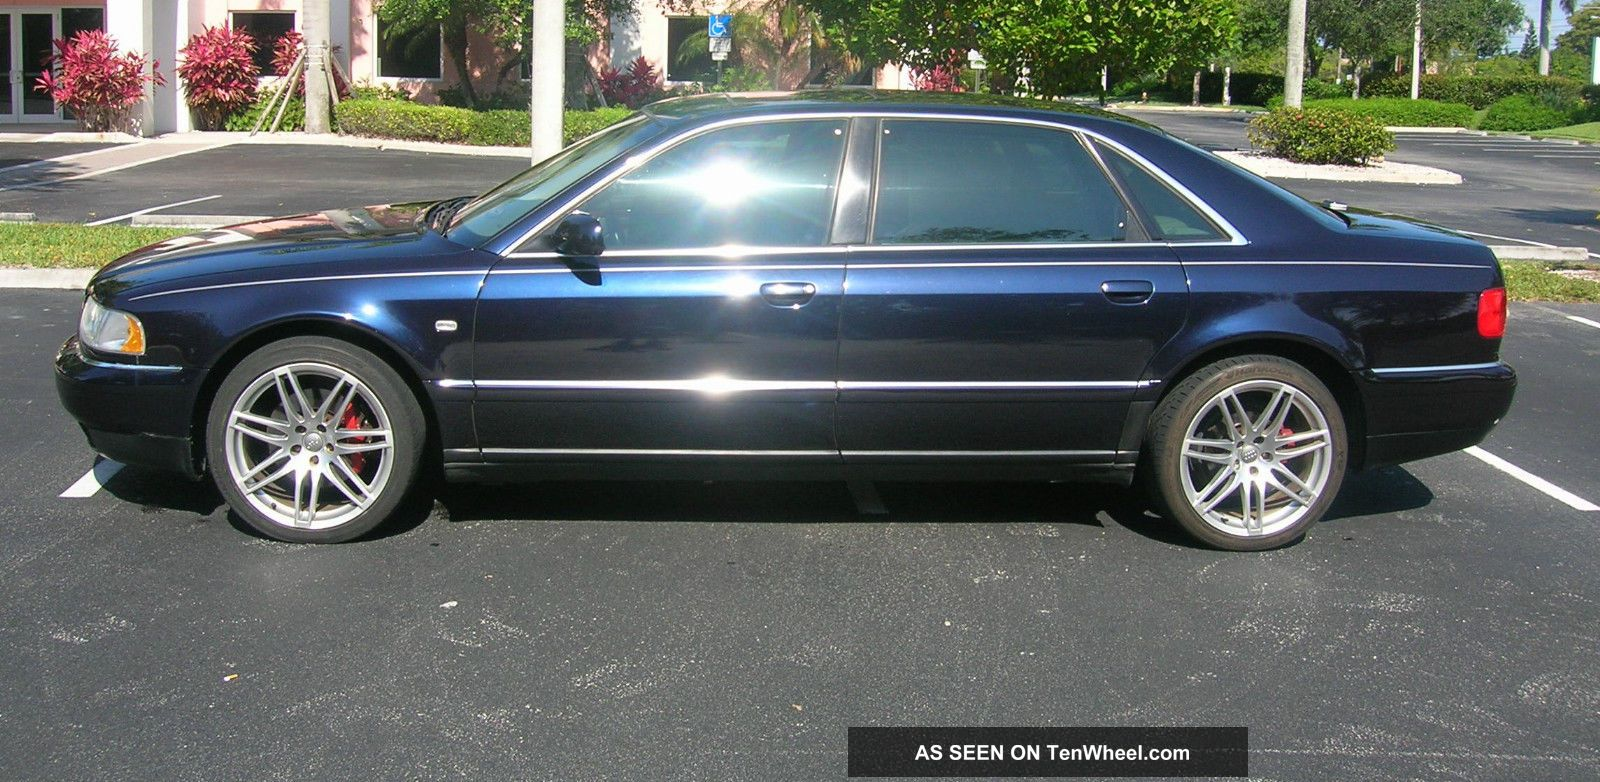 2001 Audi A8l Long Body - Upgraded Rims - Loaded - Great Daily Driver A8 photo